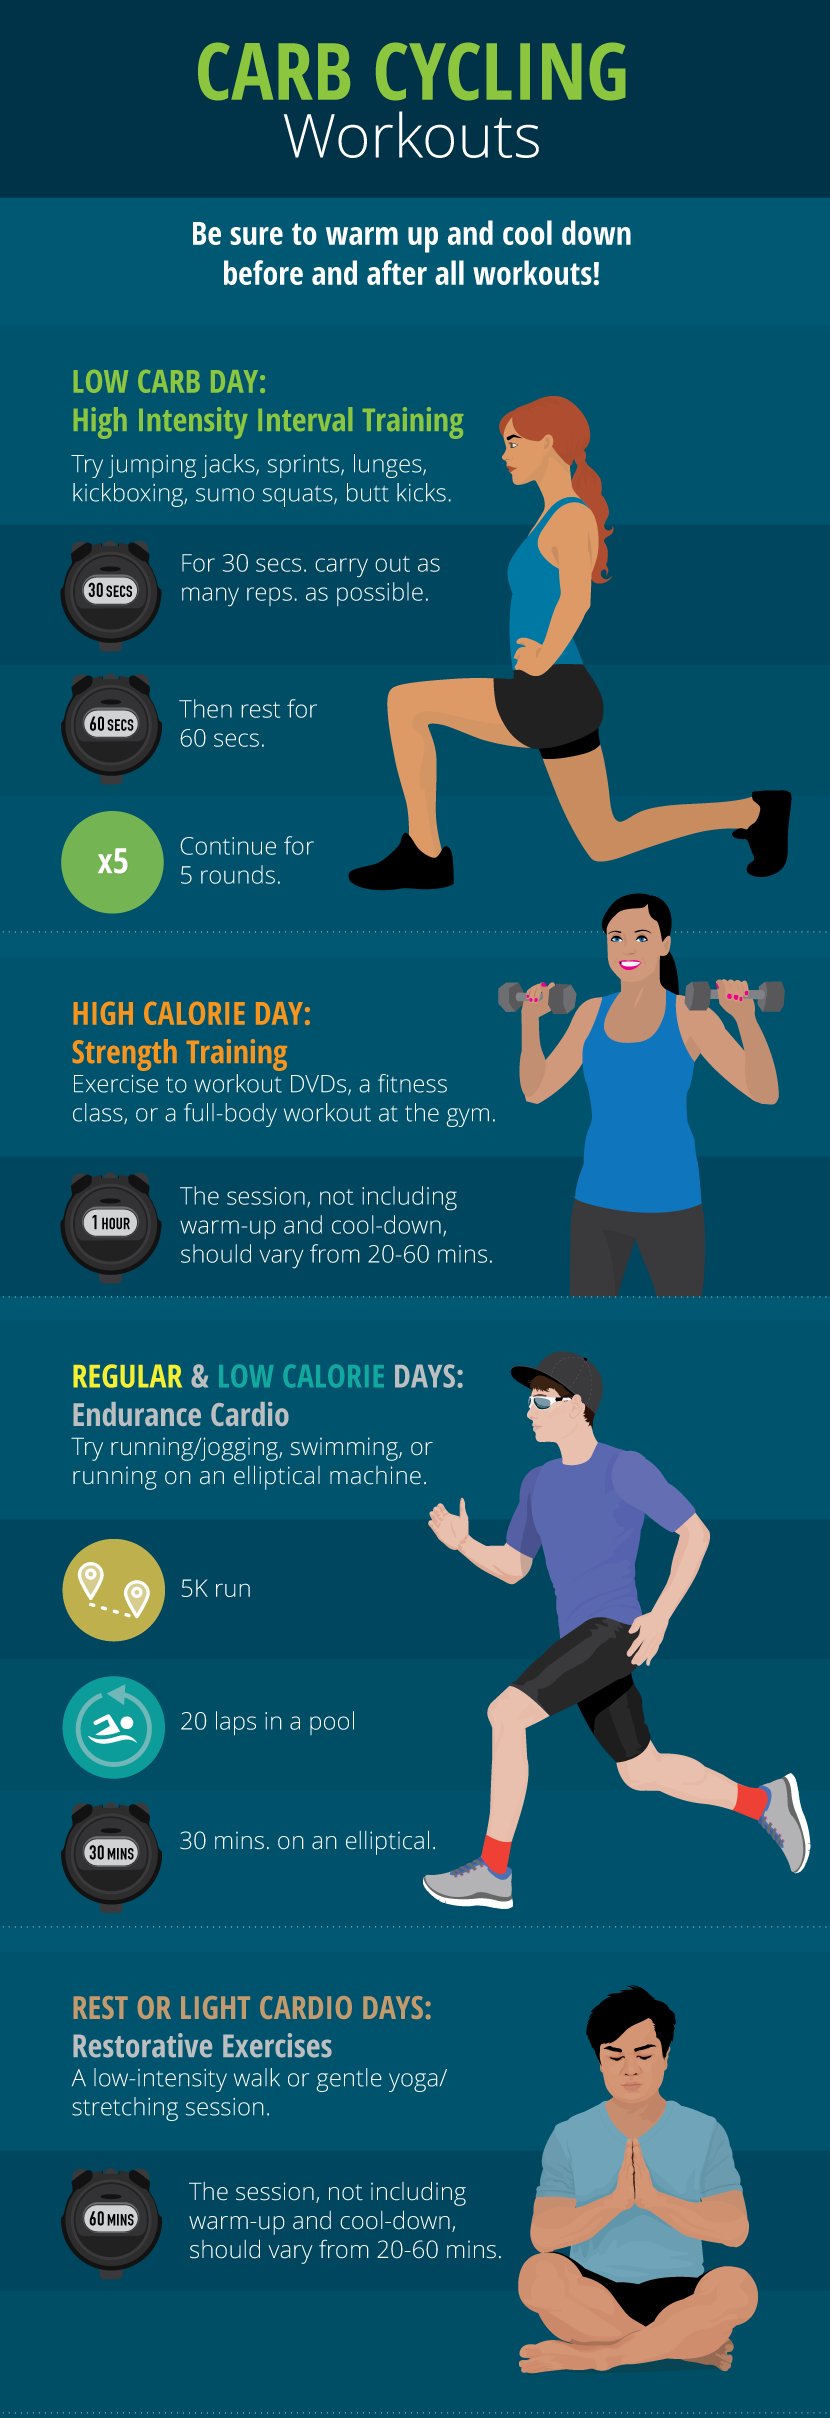 Carb cycling workouts